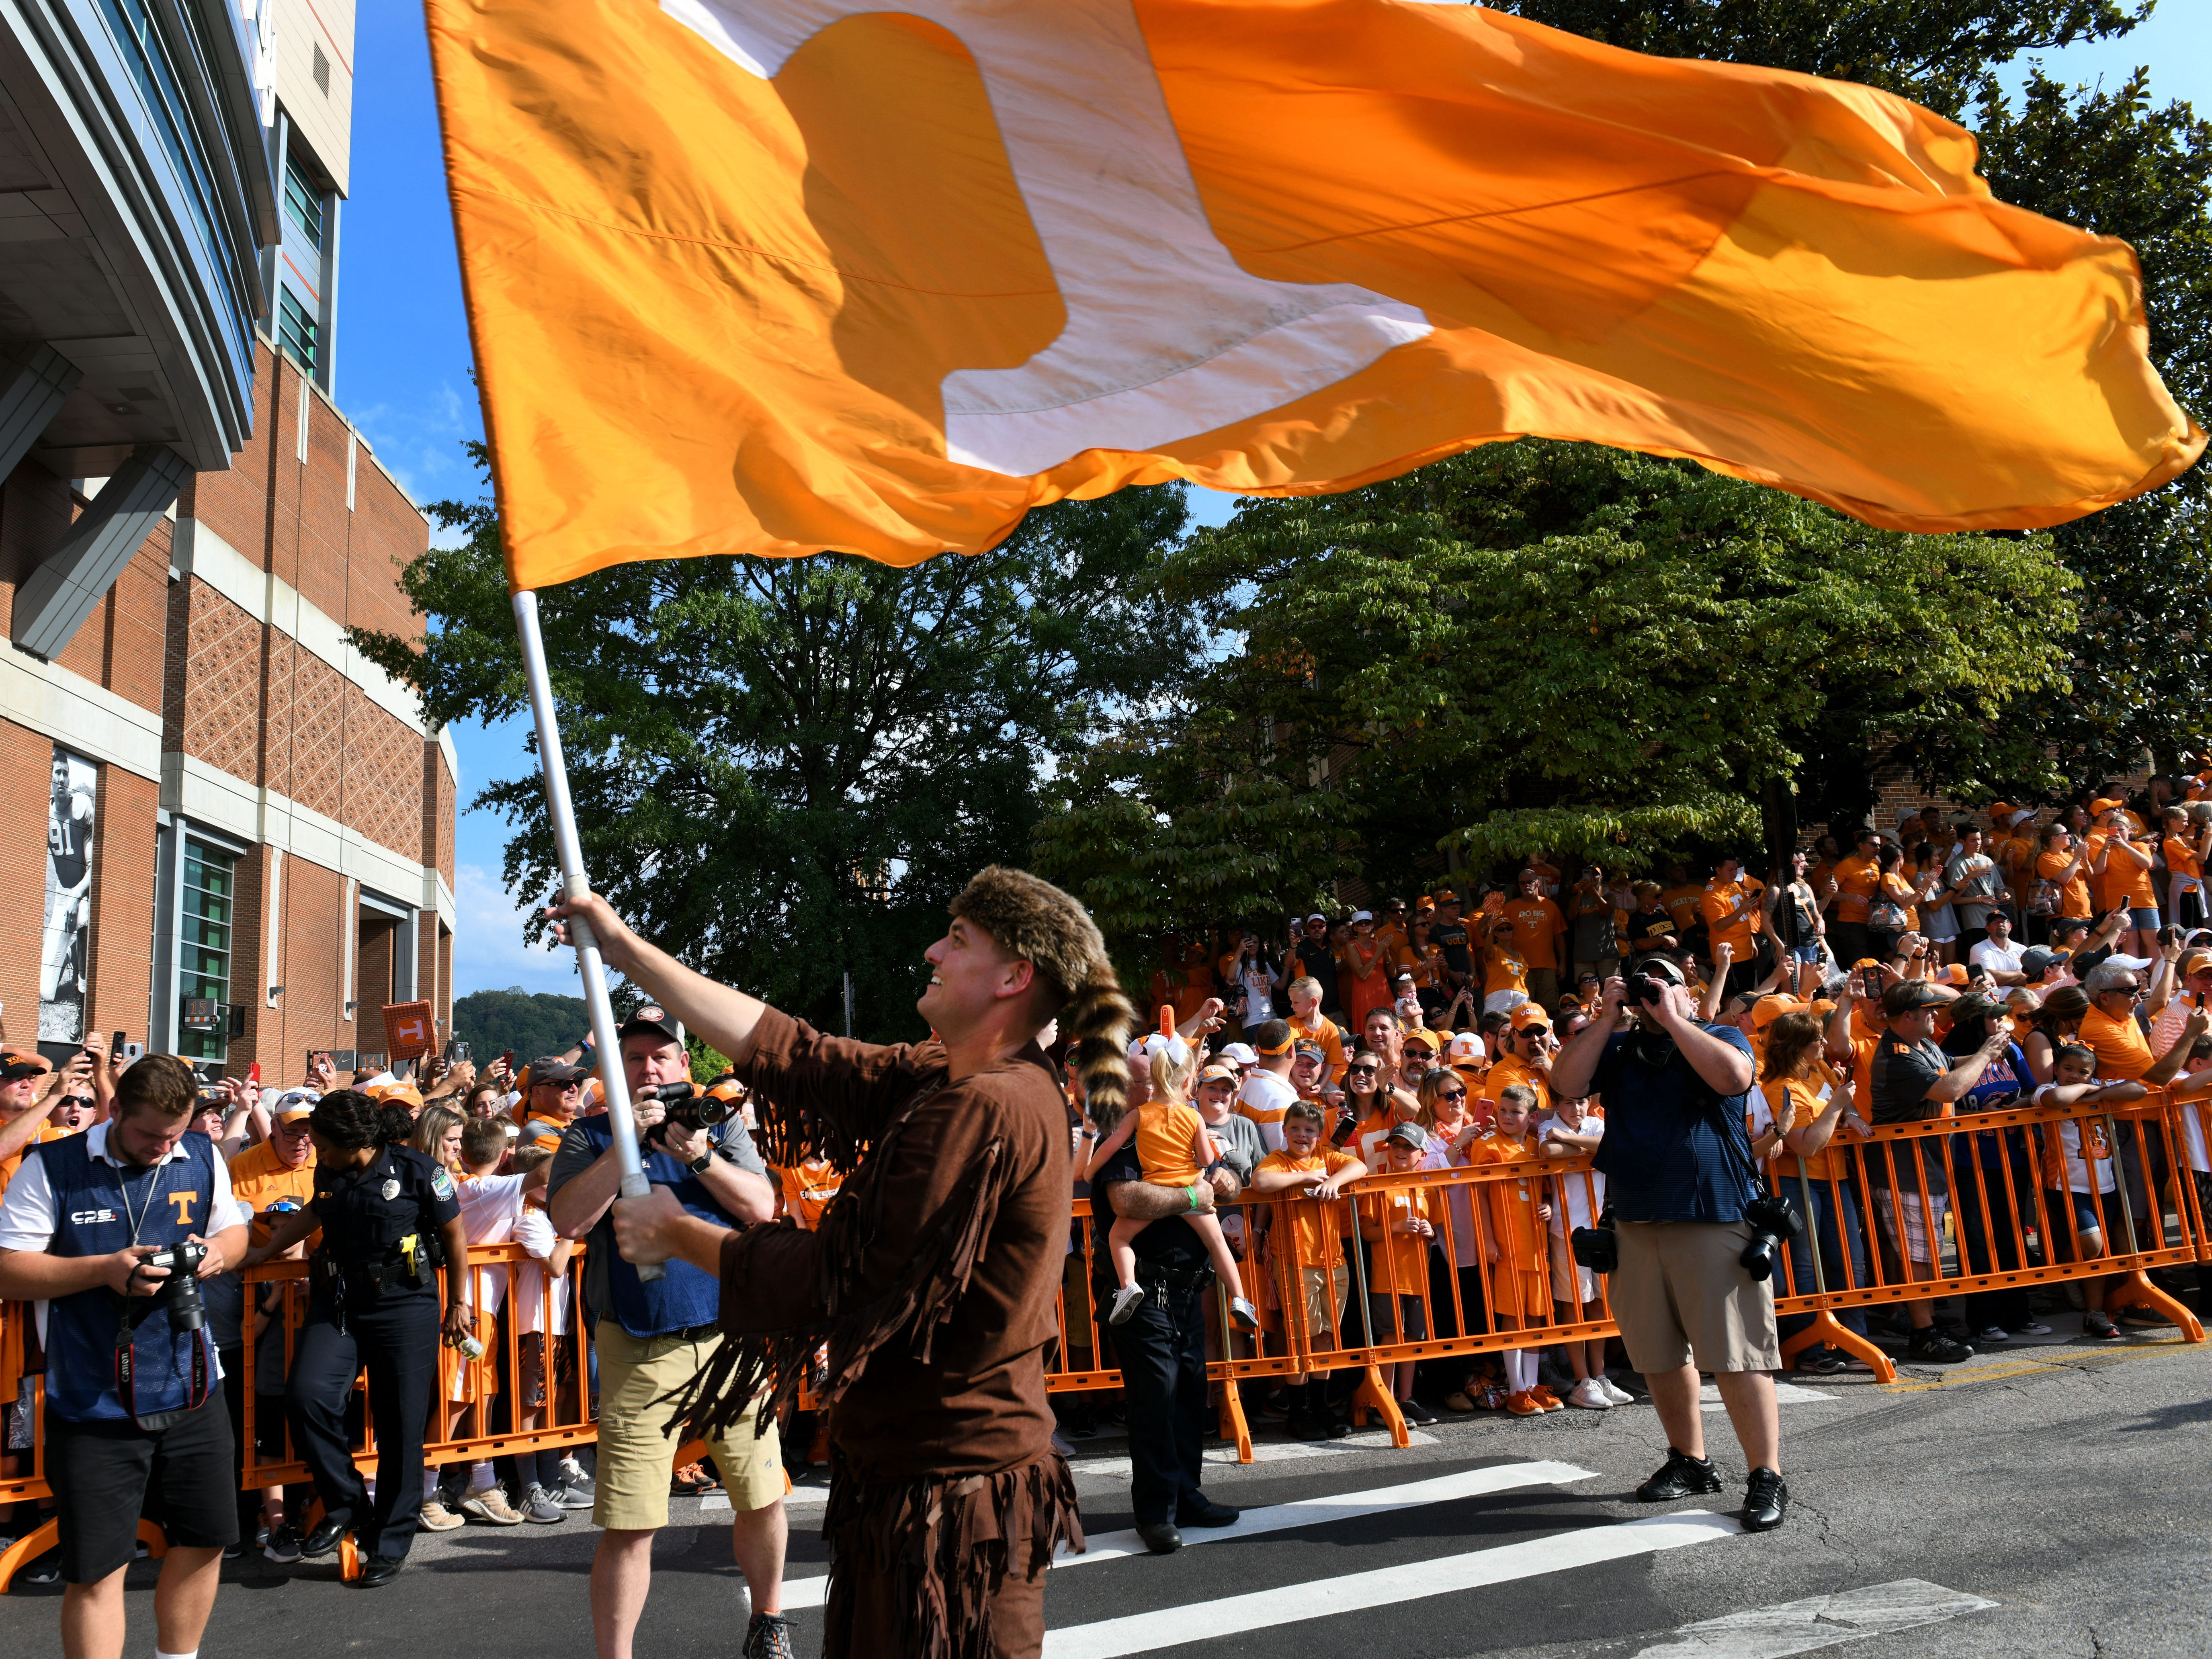 The Tennessee Volunteer during pregame activities before their game against Florida in Neyland Stadium Saturday, September 22, 2018 in Knoxville, Tenn.